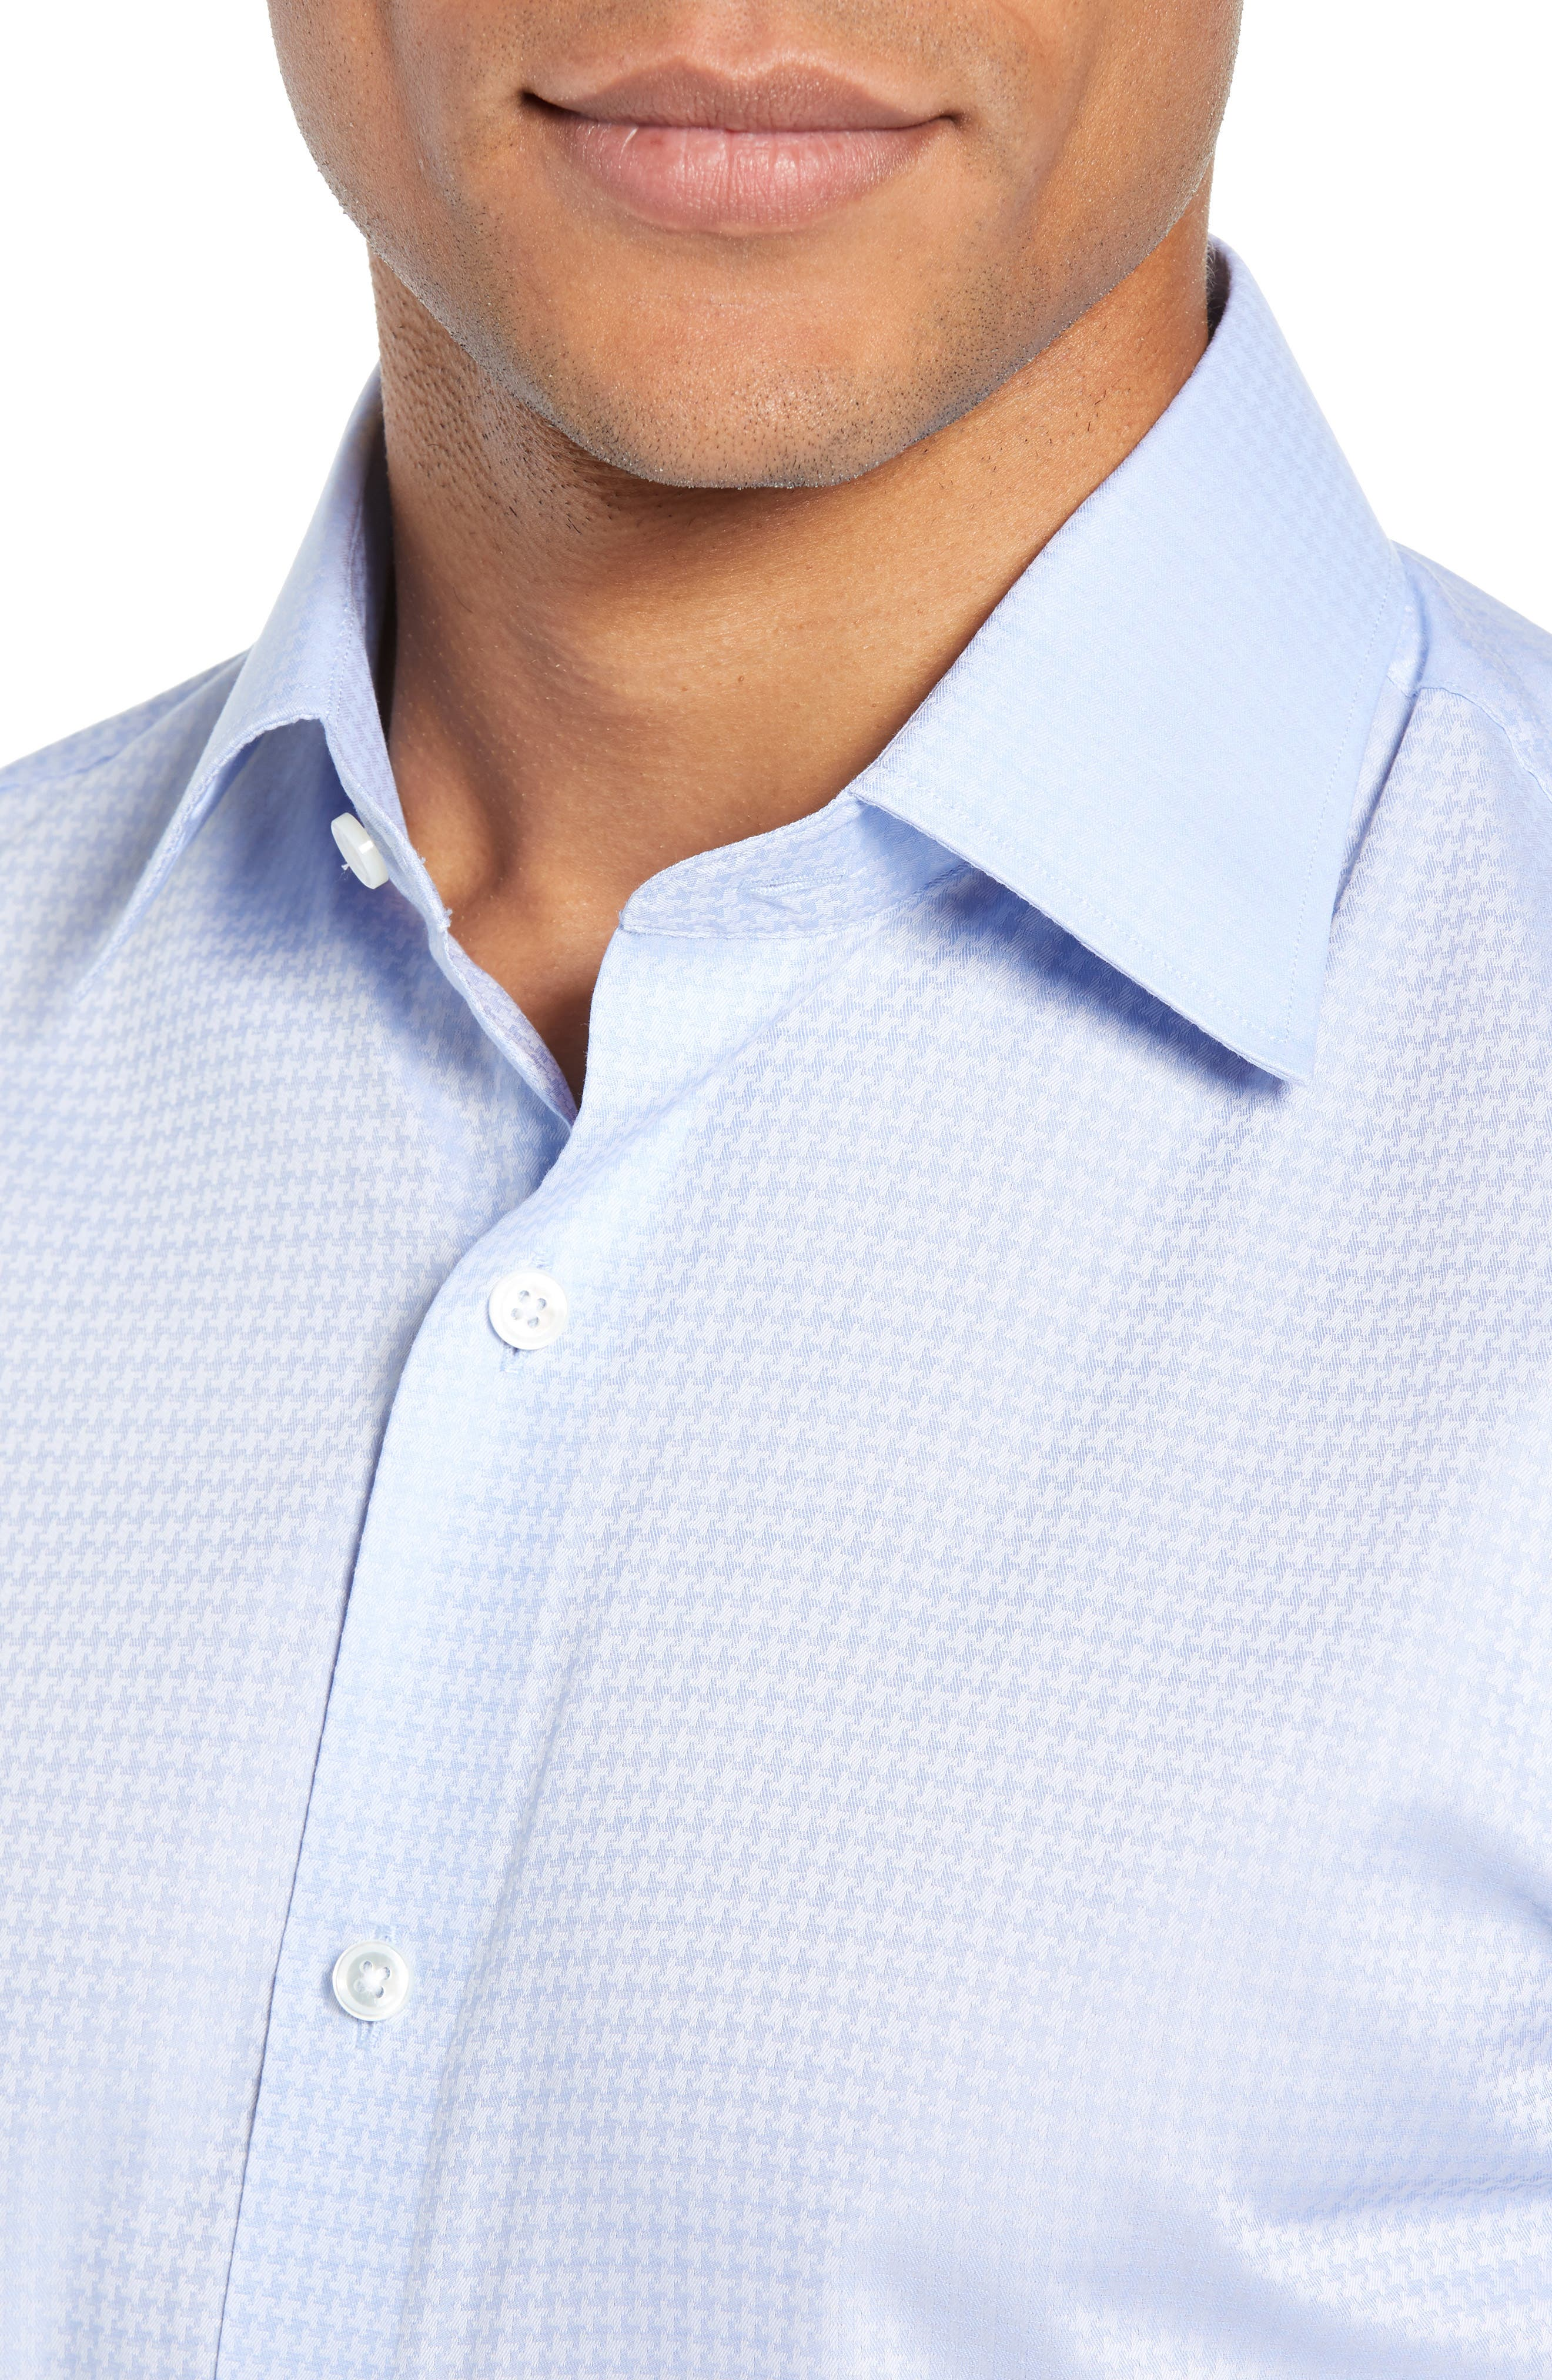 Swiss Performance Clifton Slim Fit Houndstooth Dress Shirt,                             Alternate thumbnail 2, color,                             CANNES BLUE